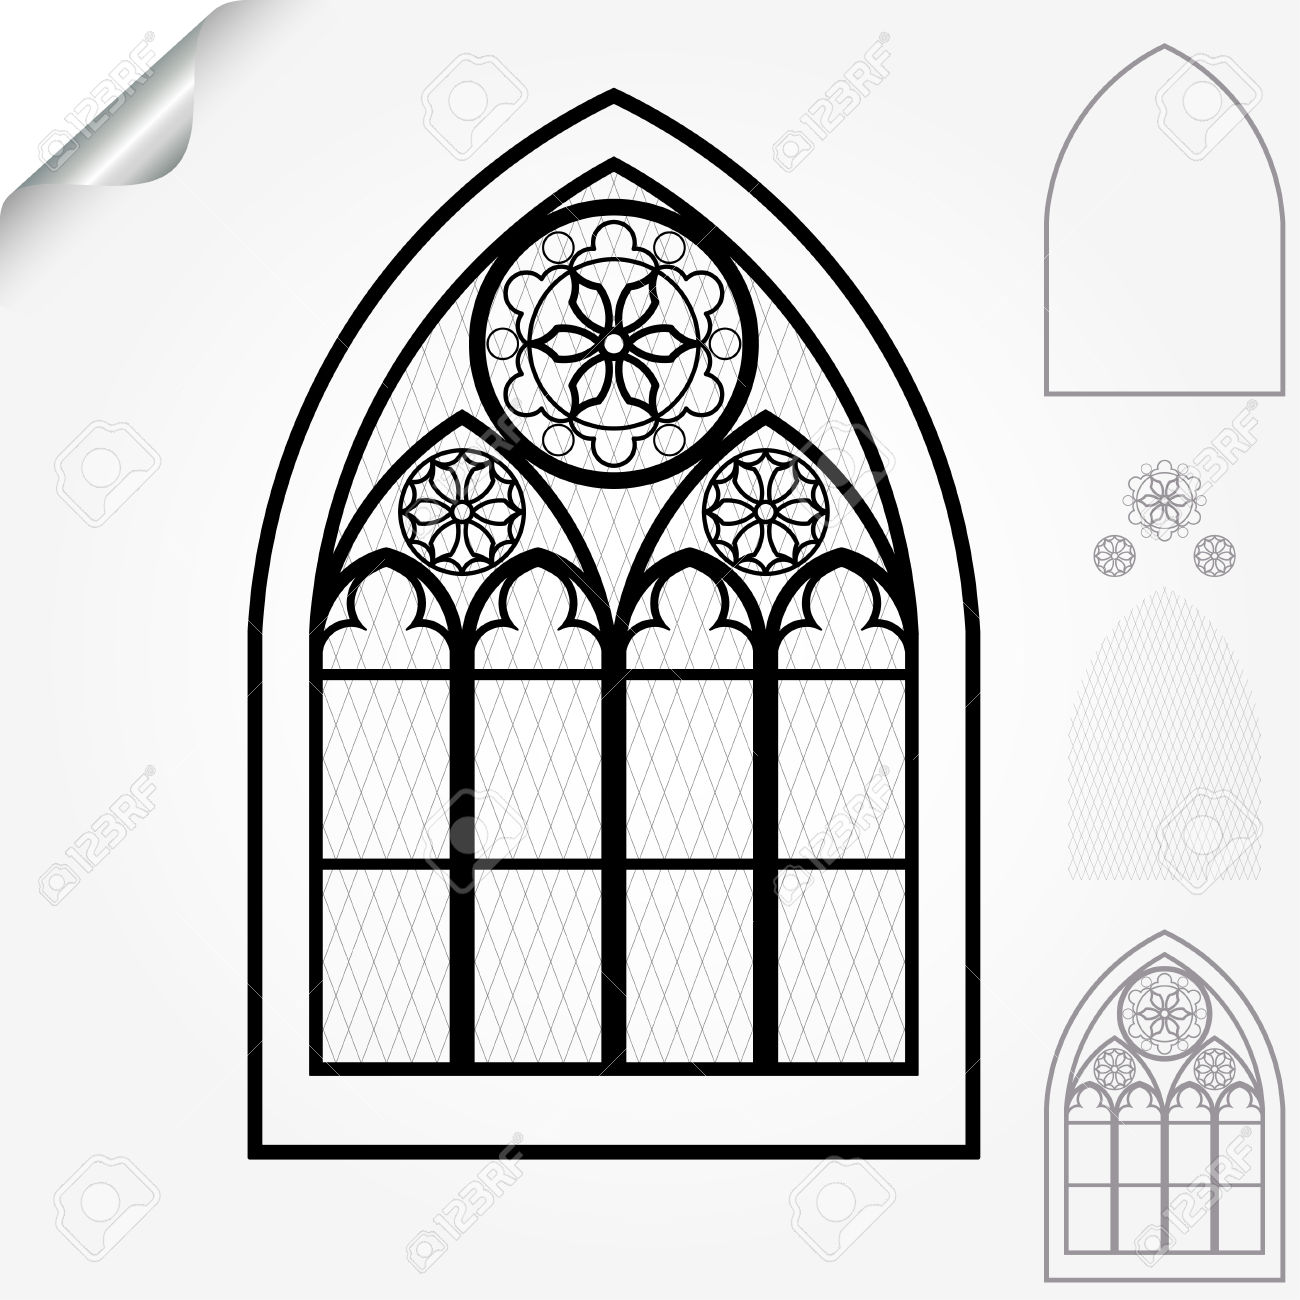 Gothic Window Of Cathedrals, Churches, Monasteries And Medieval.